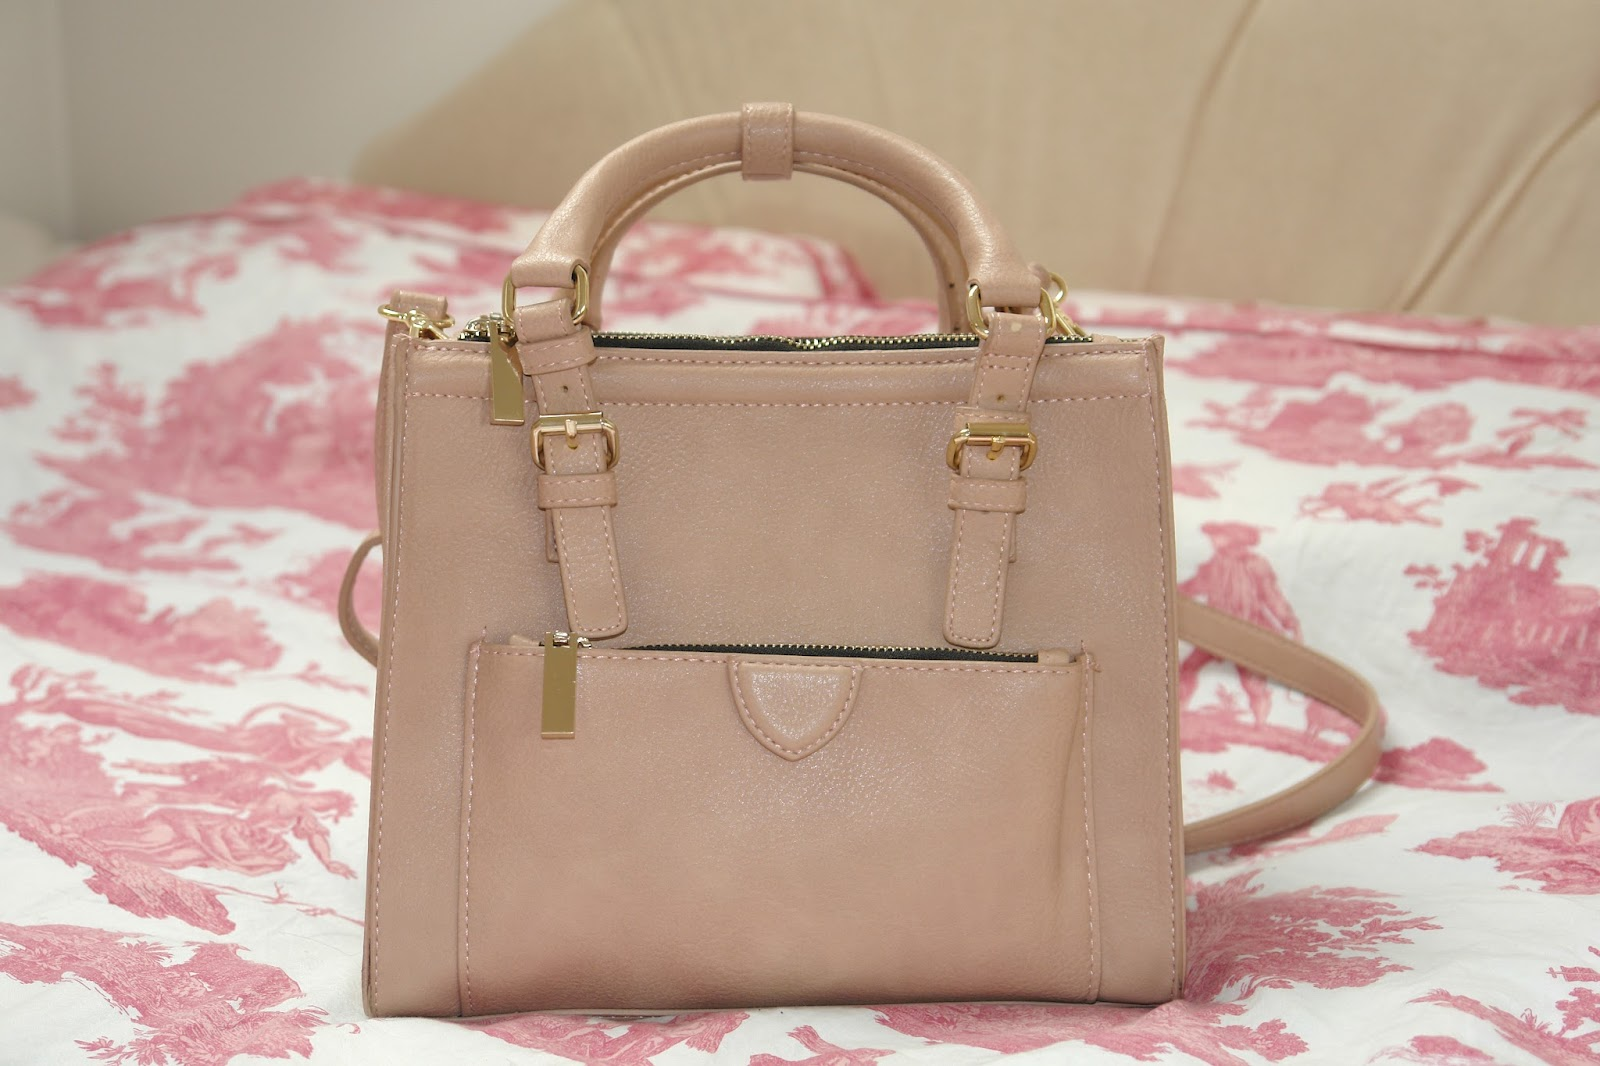 ZARA Mini City Bag in Light Pink, blog, blogger, photos, fashion, UK fashion, handbag, Spring, Summer, pastel